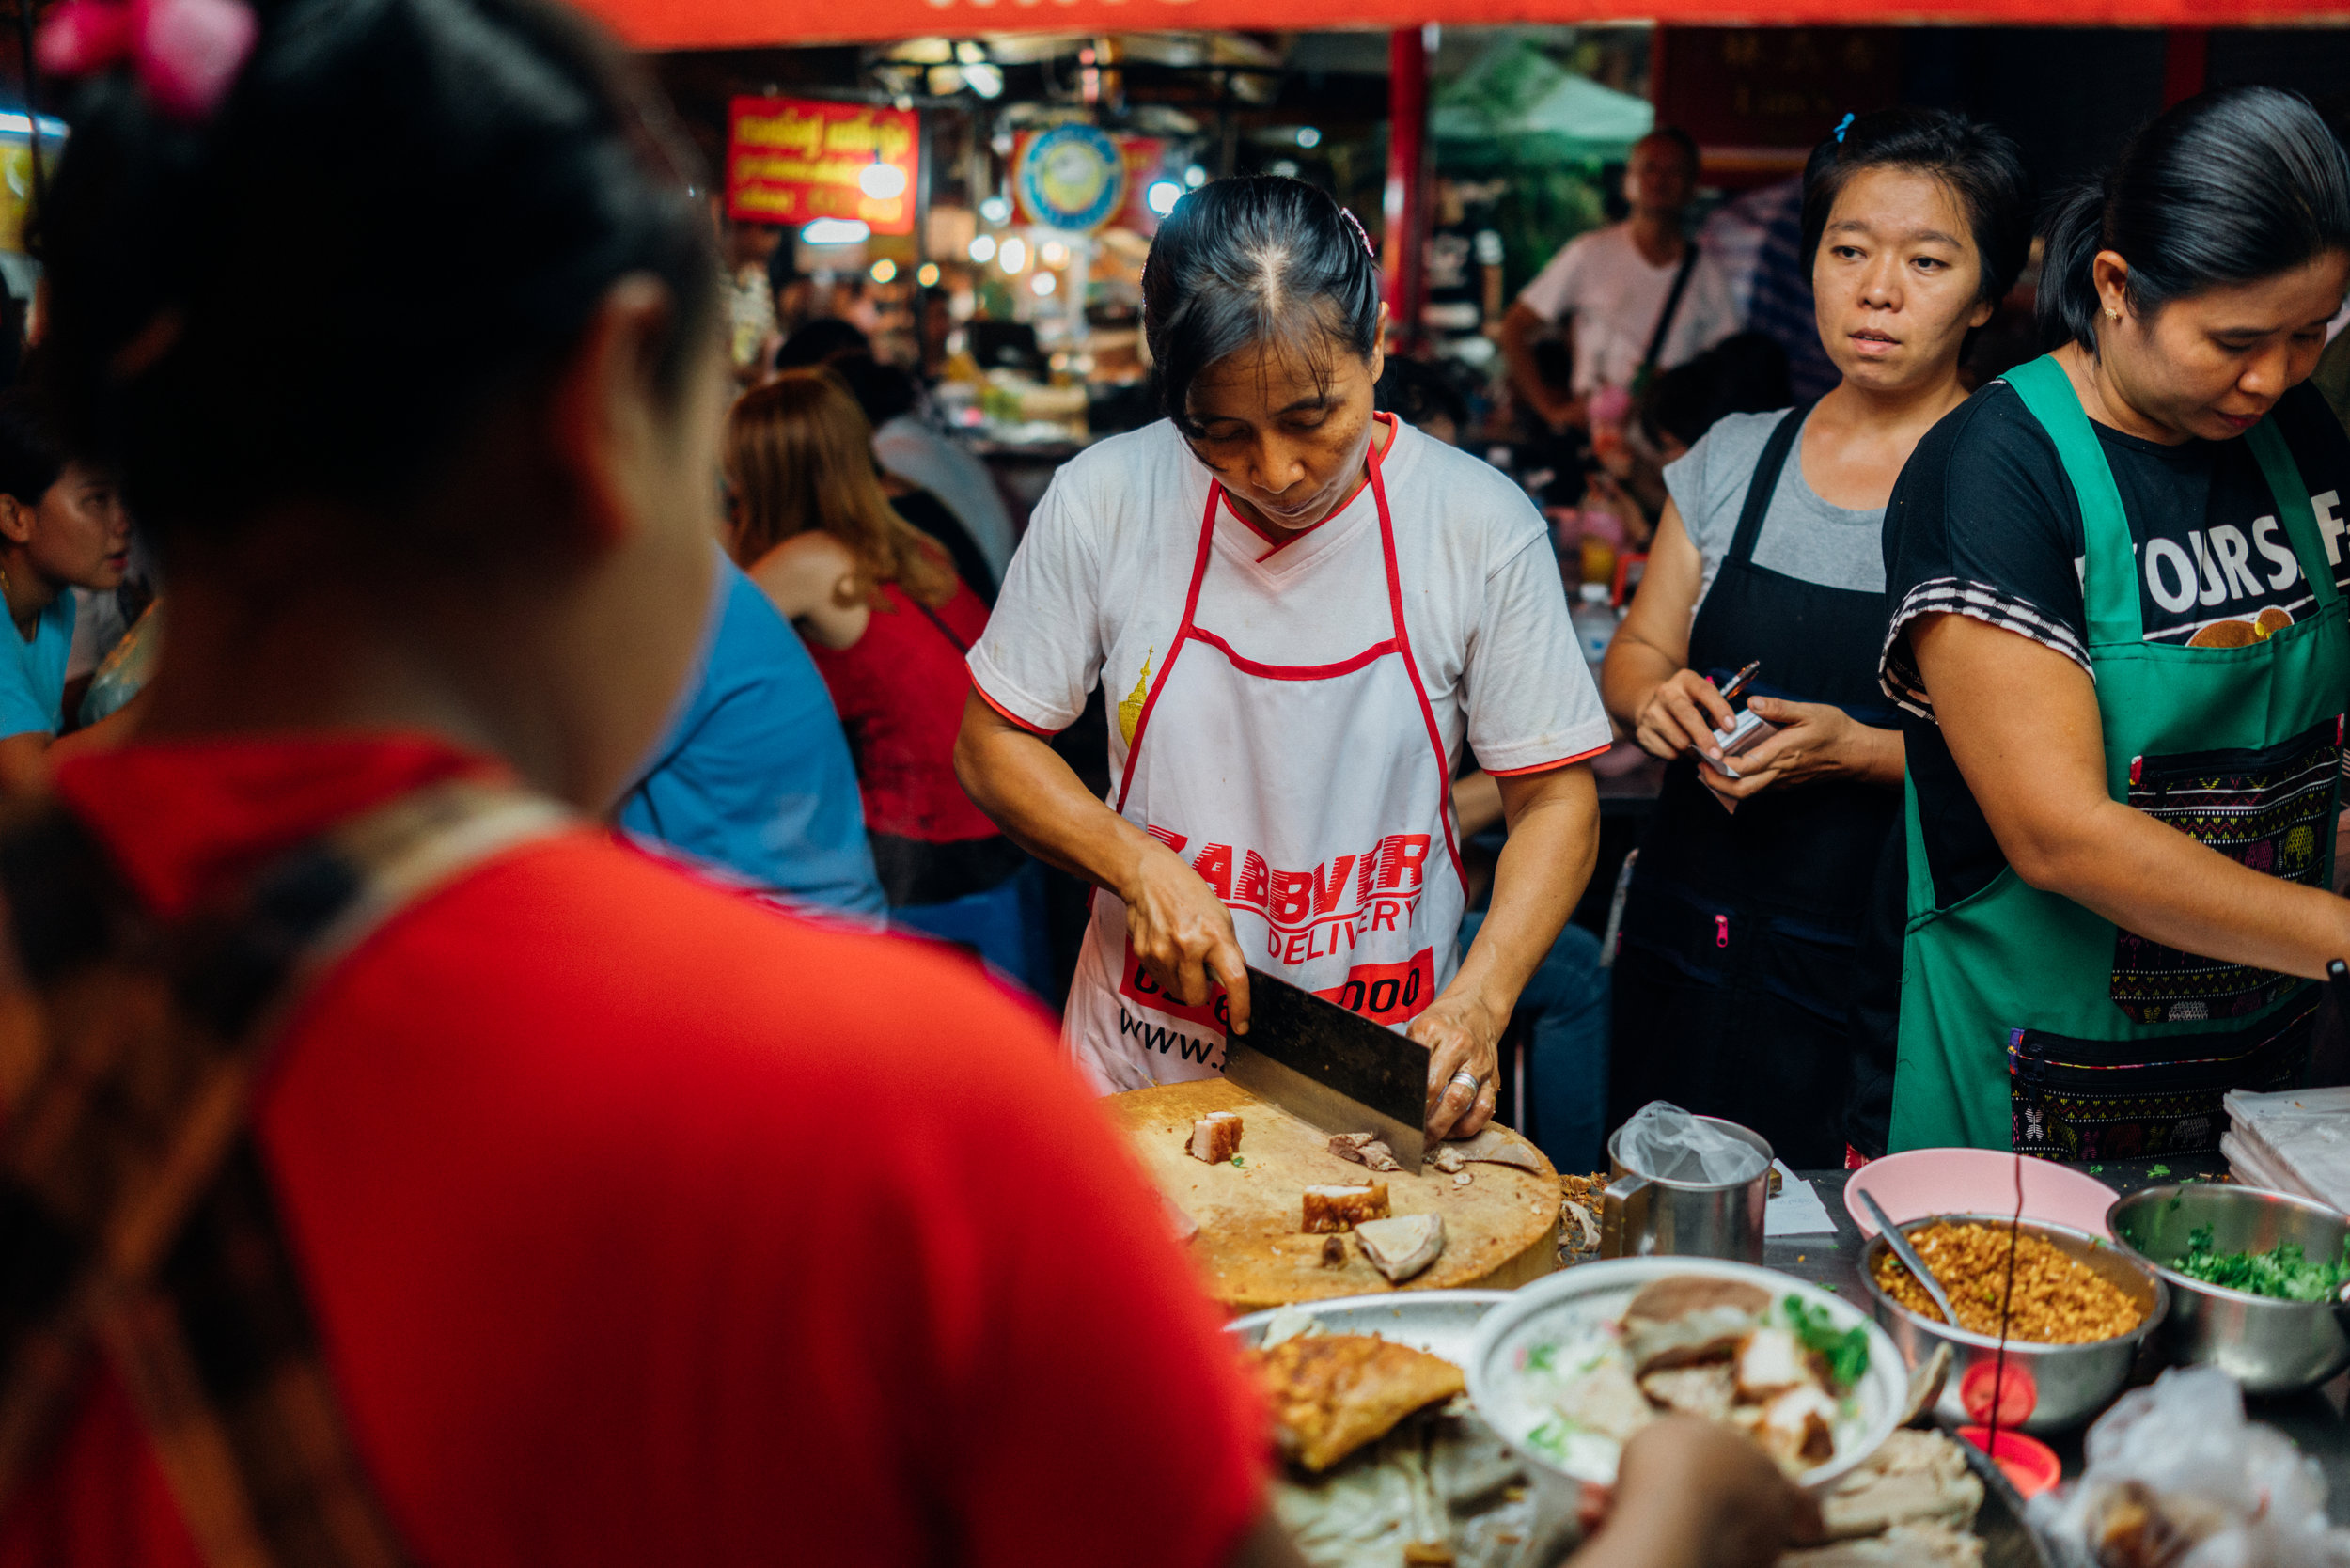 Impressive assembly line at the busy  Kuay Jab Nay Lek  on a busy Sunday night in Bangkok's Chinatown